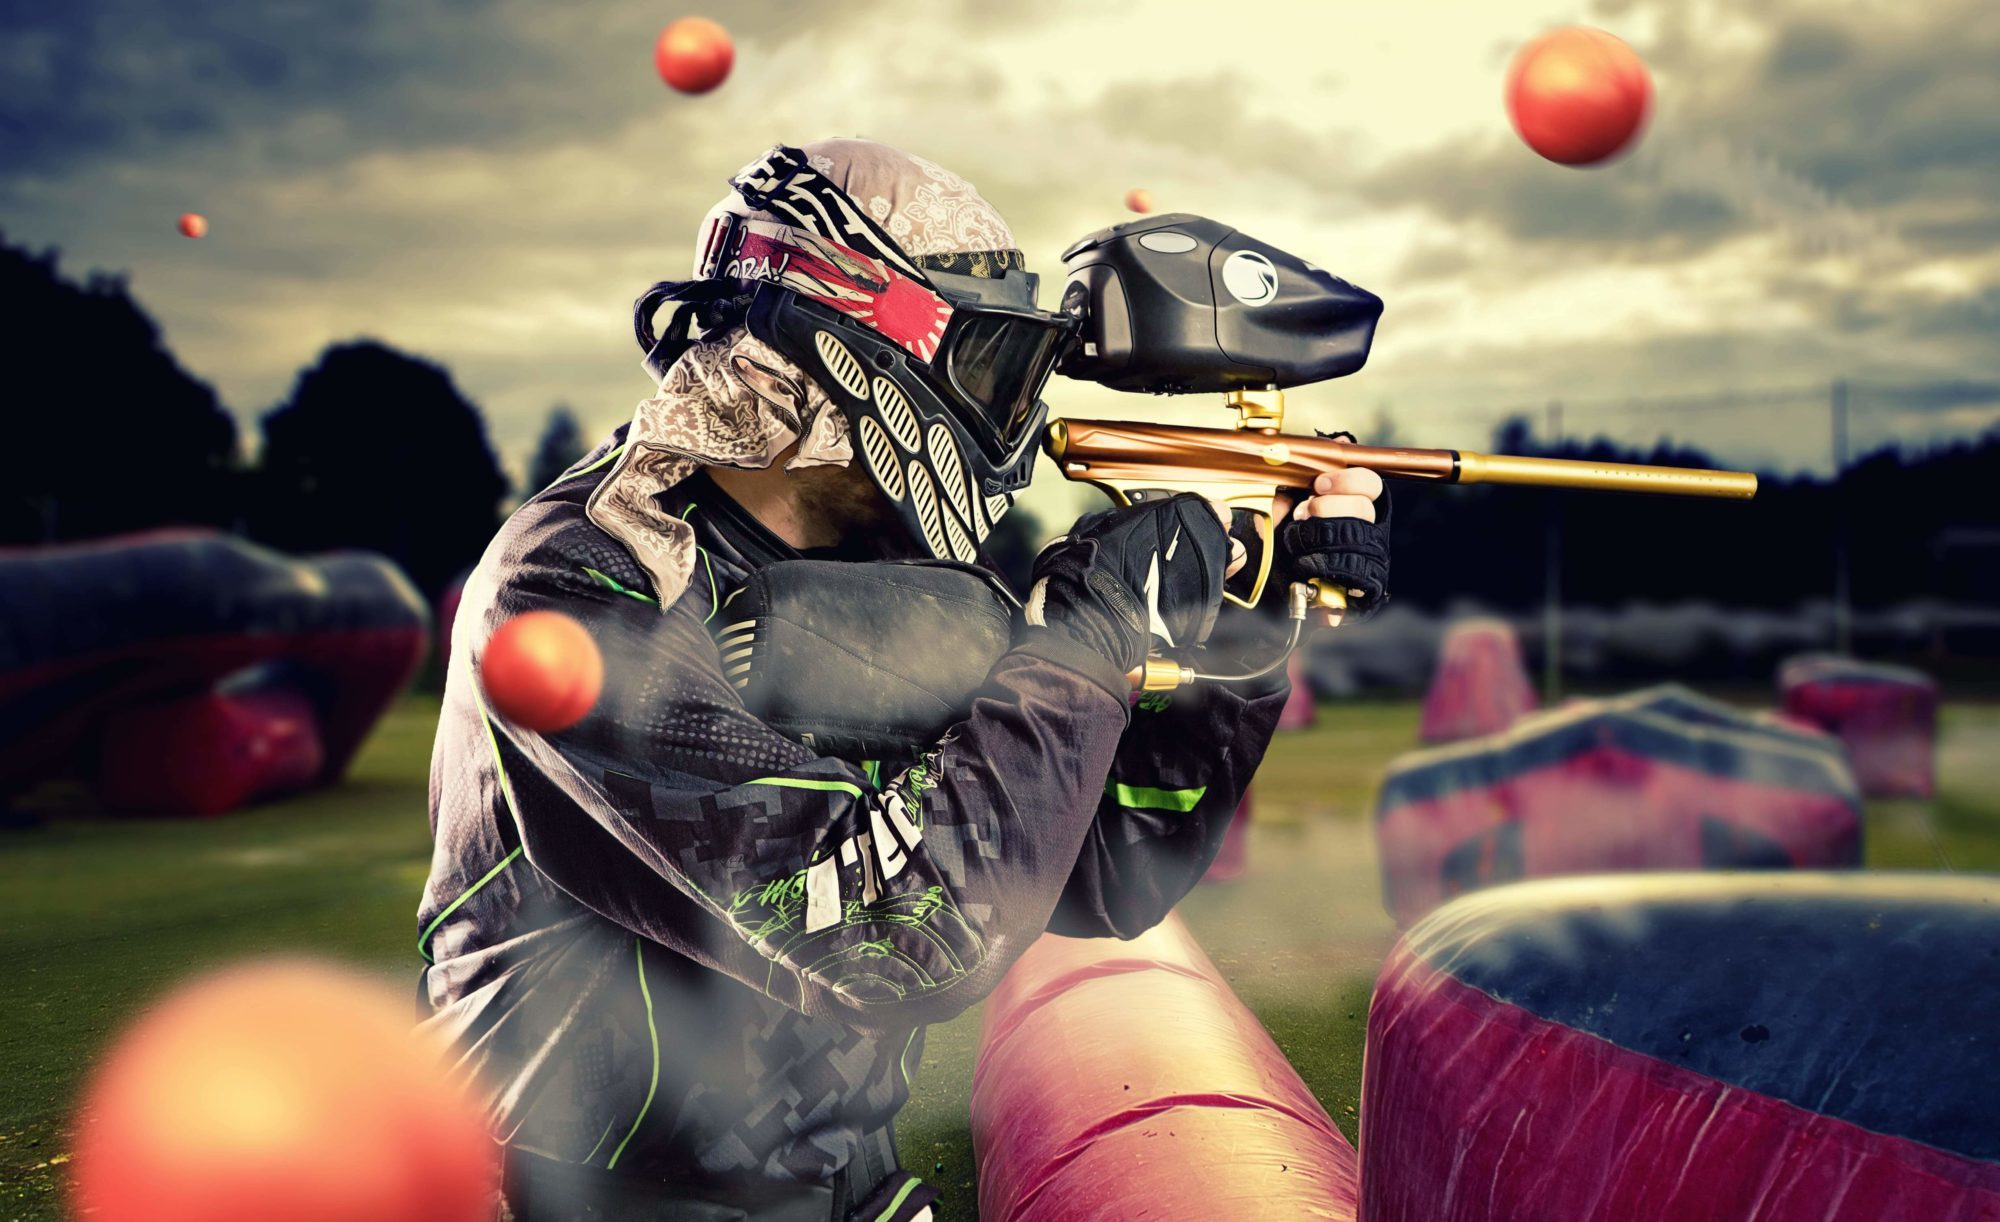 Mobile paintball games